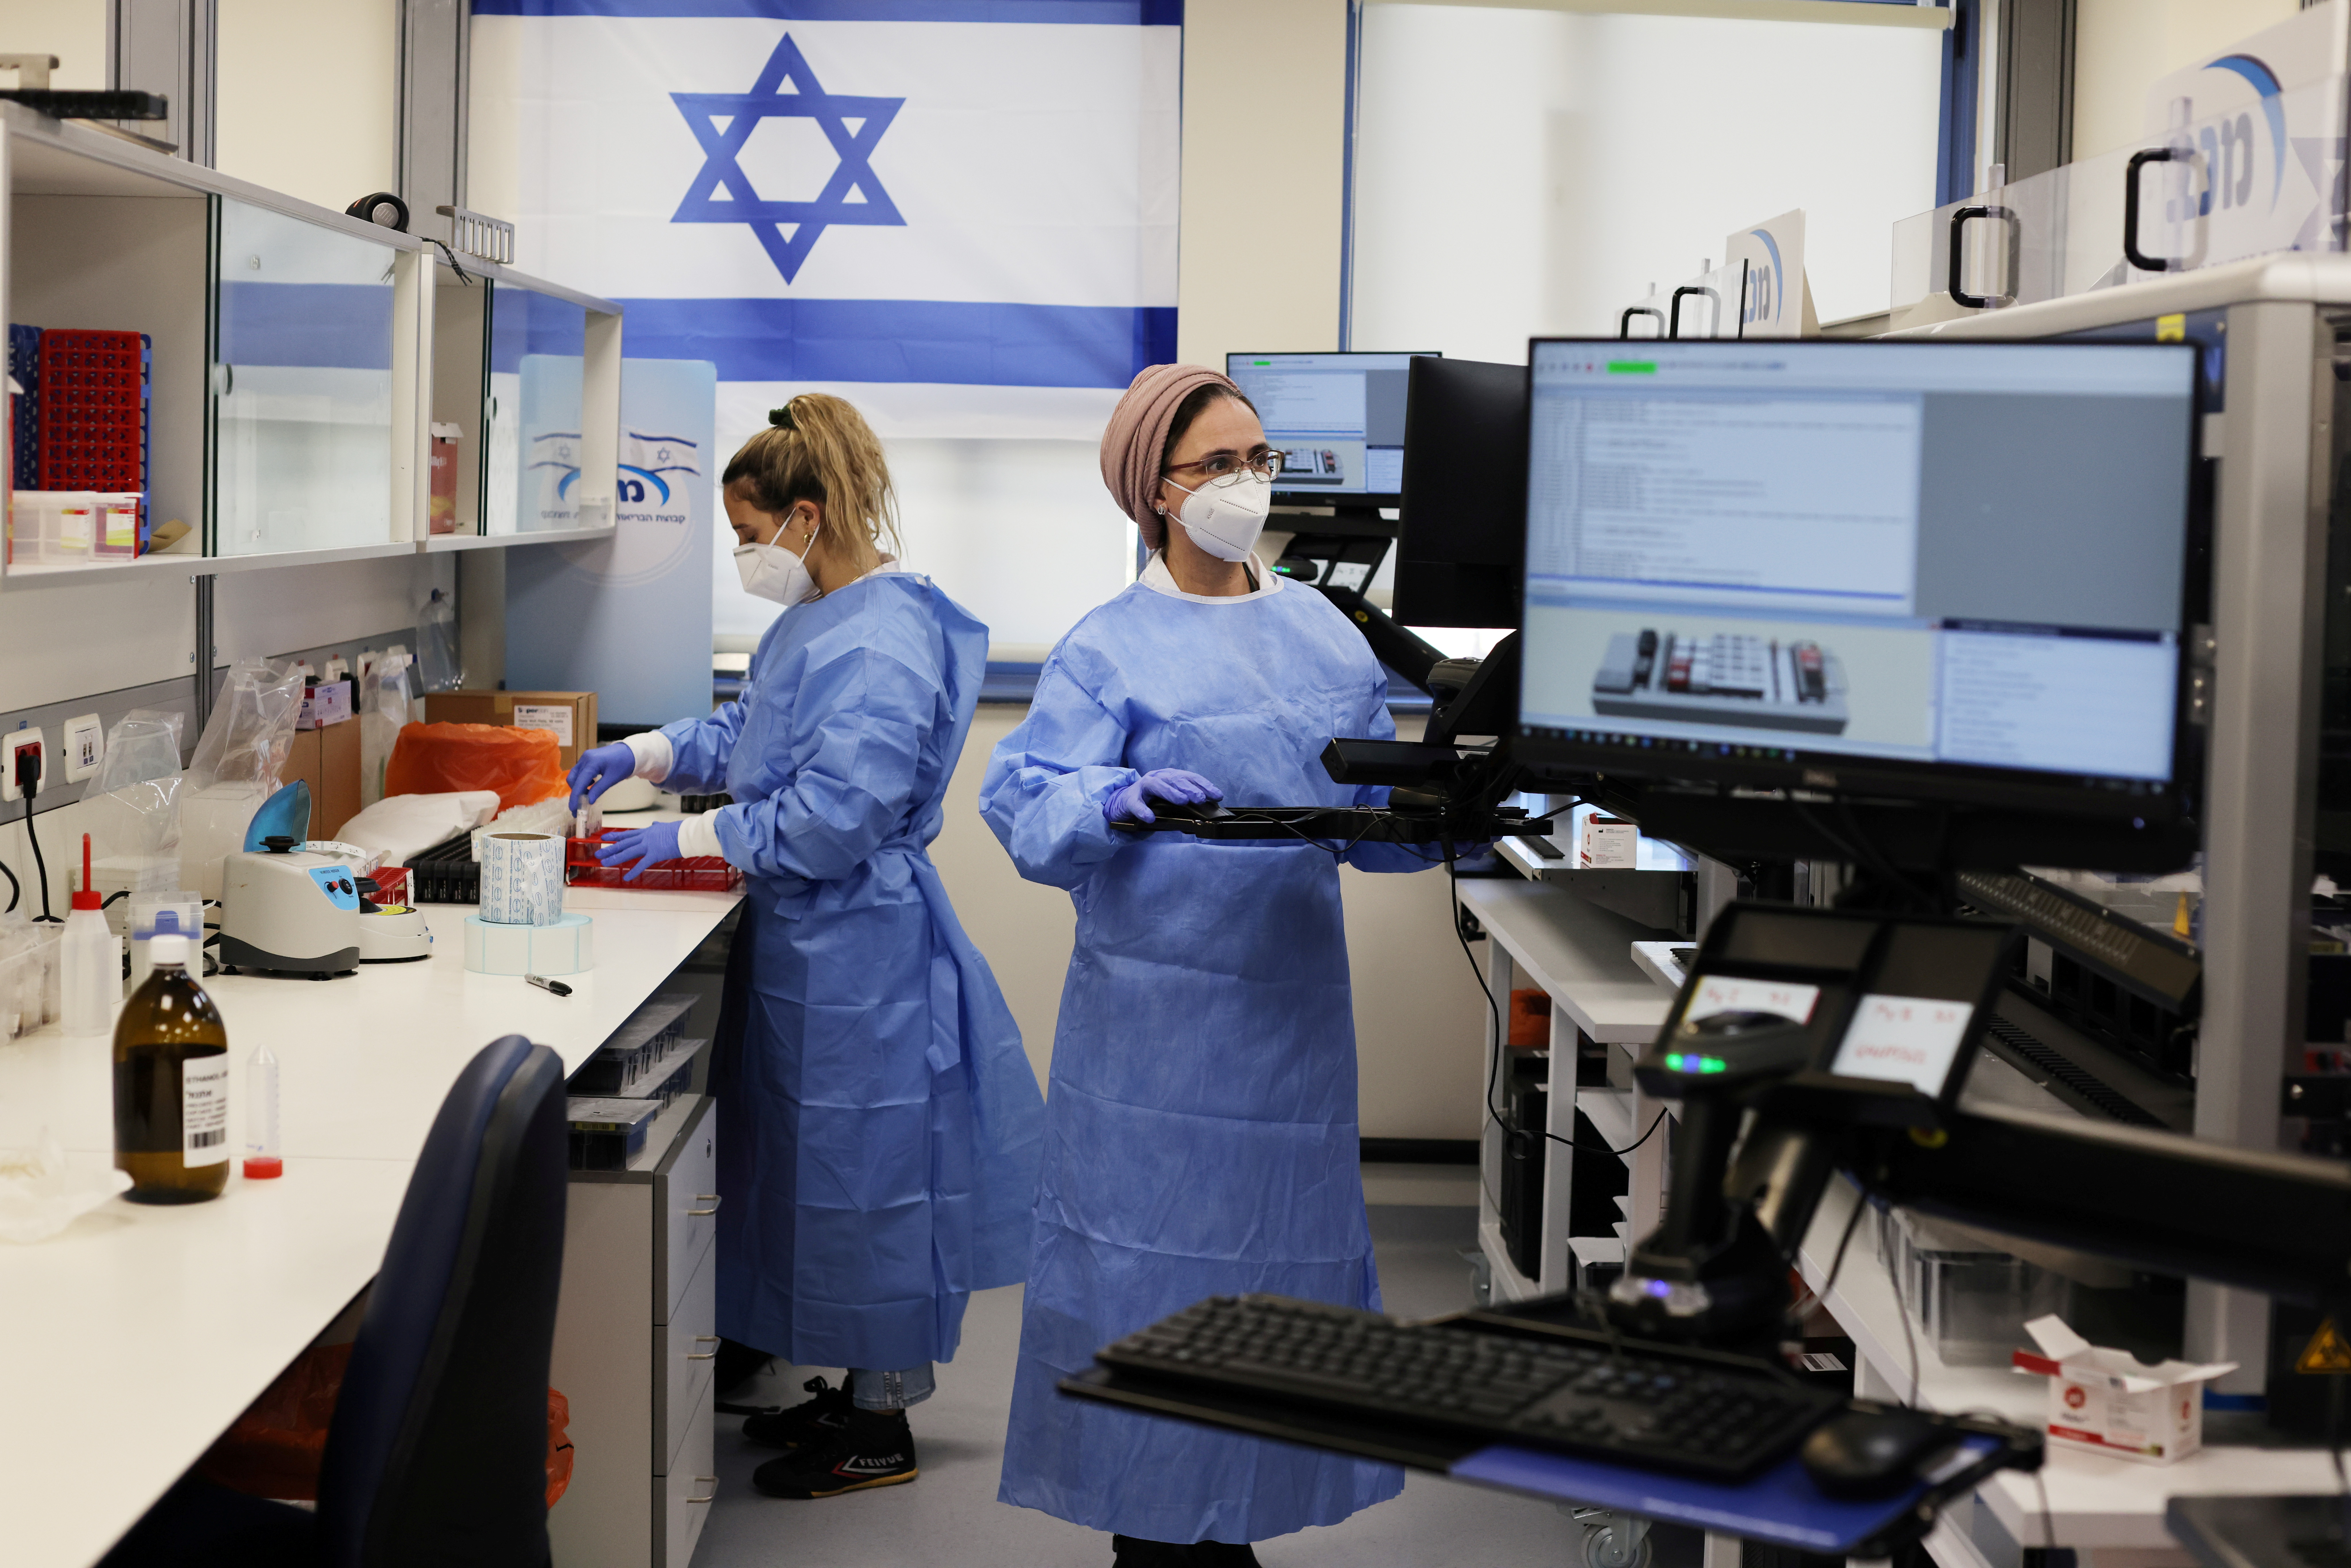 Technicians work at Healthcare Maintenance Organization (HMO) Maccabi's coronavirus disease (COVID-19) public laboratory, performing diverse and numerous tests, in Rehovot, Israel February 9, 2021. REUTERS/Ammar Awad/File Photo